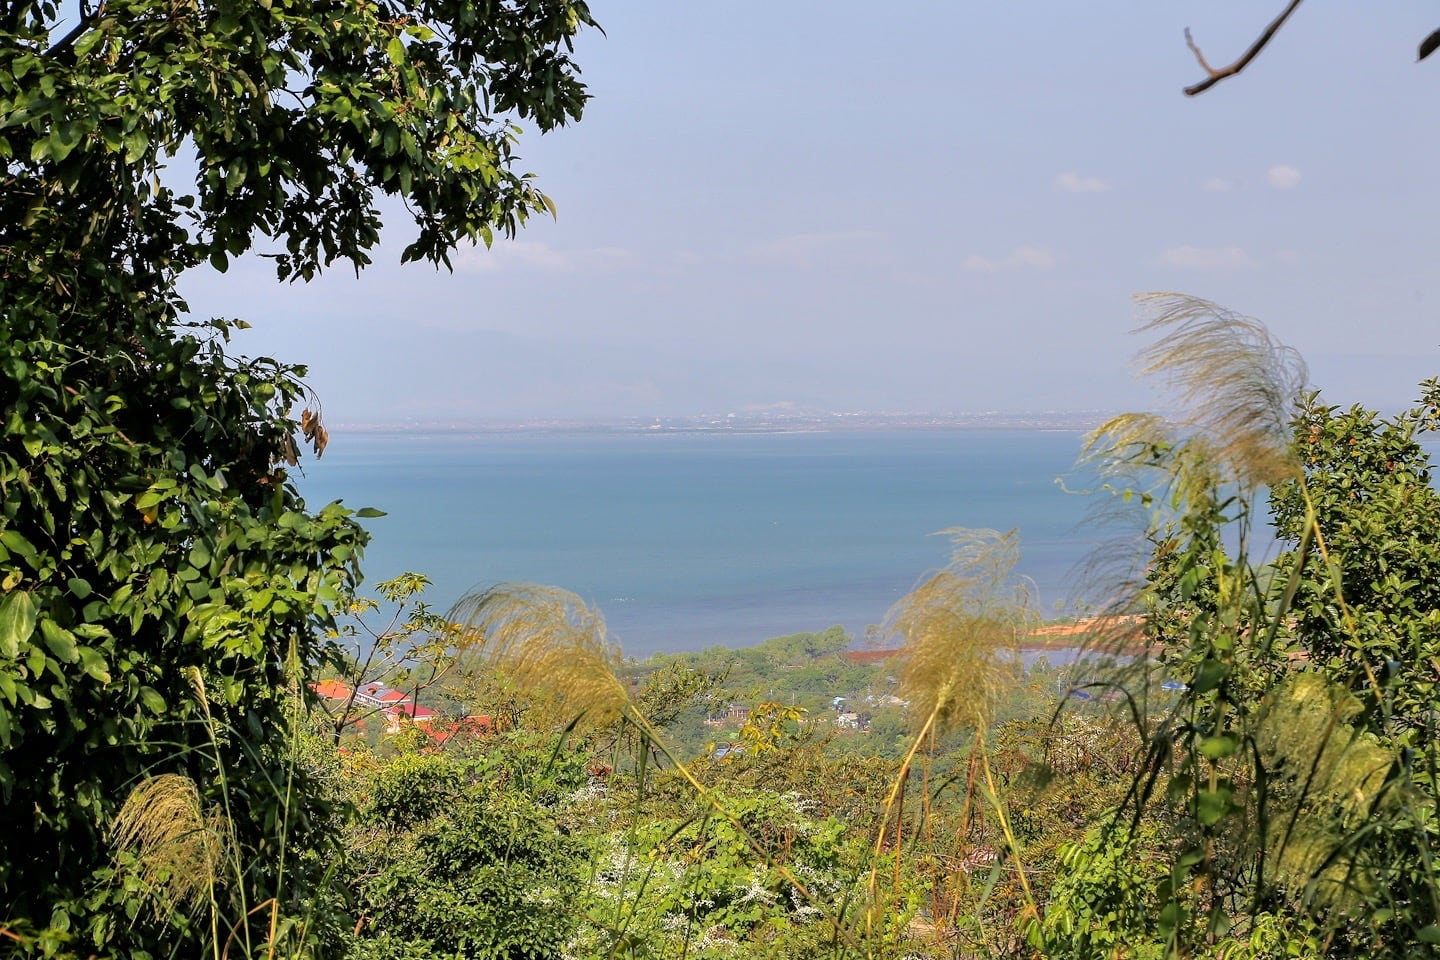 view of bay from Kep National Park